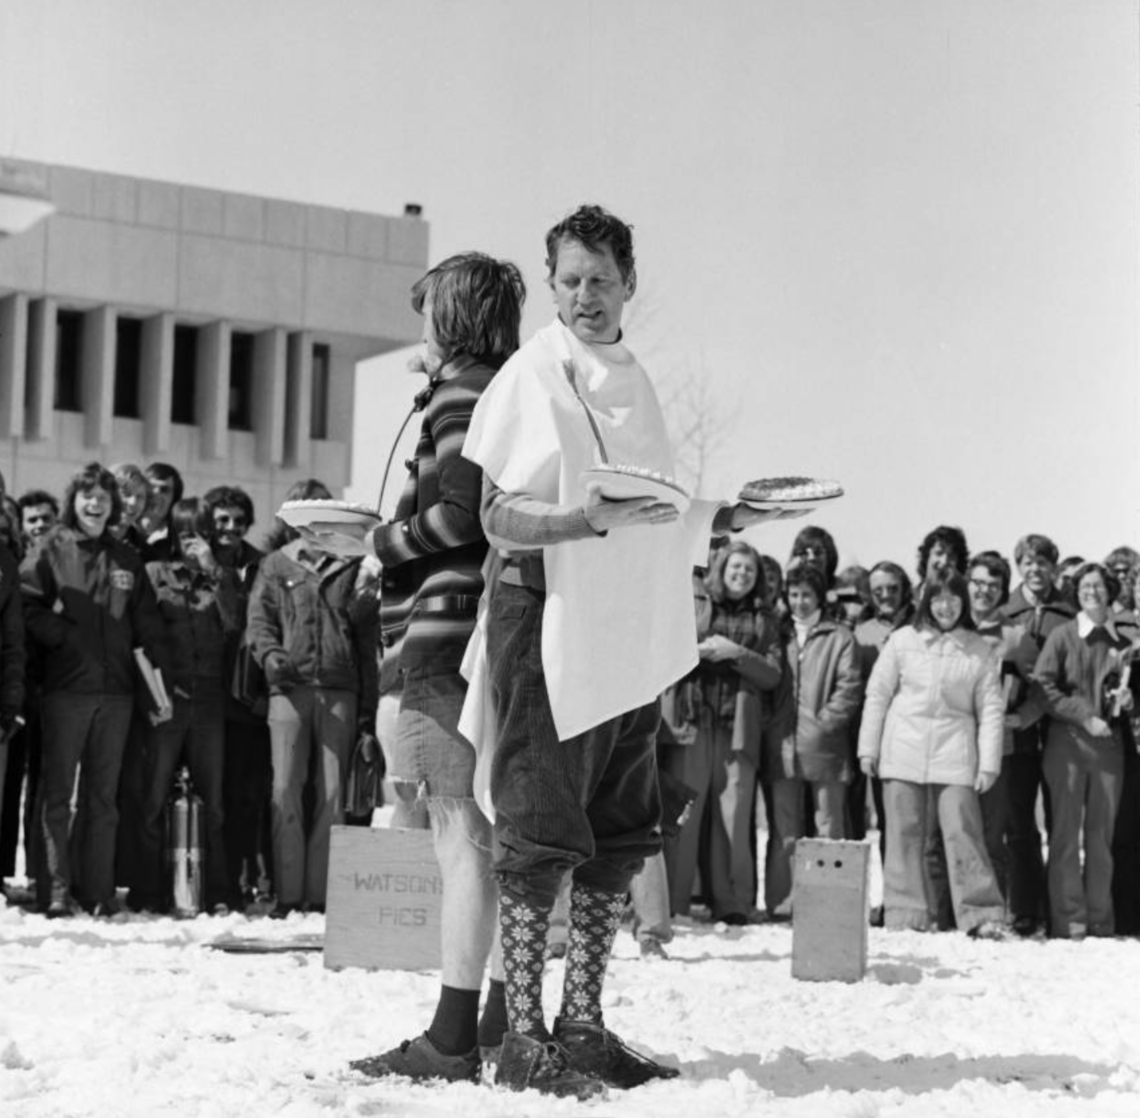 A.W.R. Carrothers, president of the University of Calgary, preparing to have a pie duel with the Students' Union president.